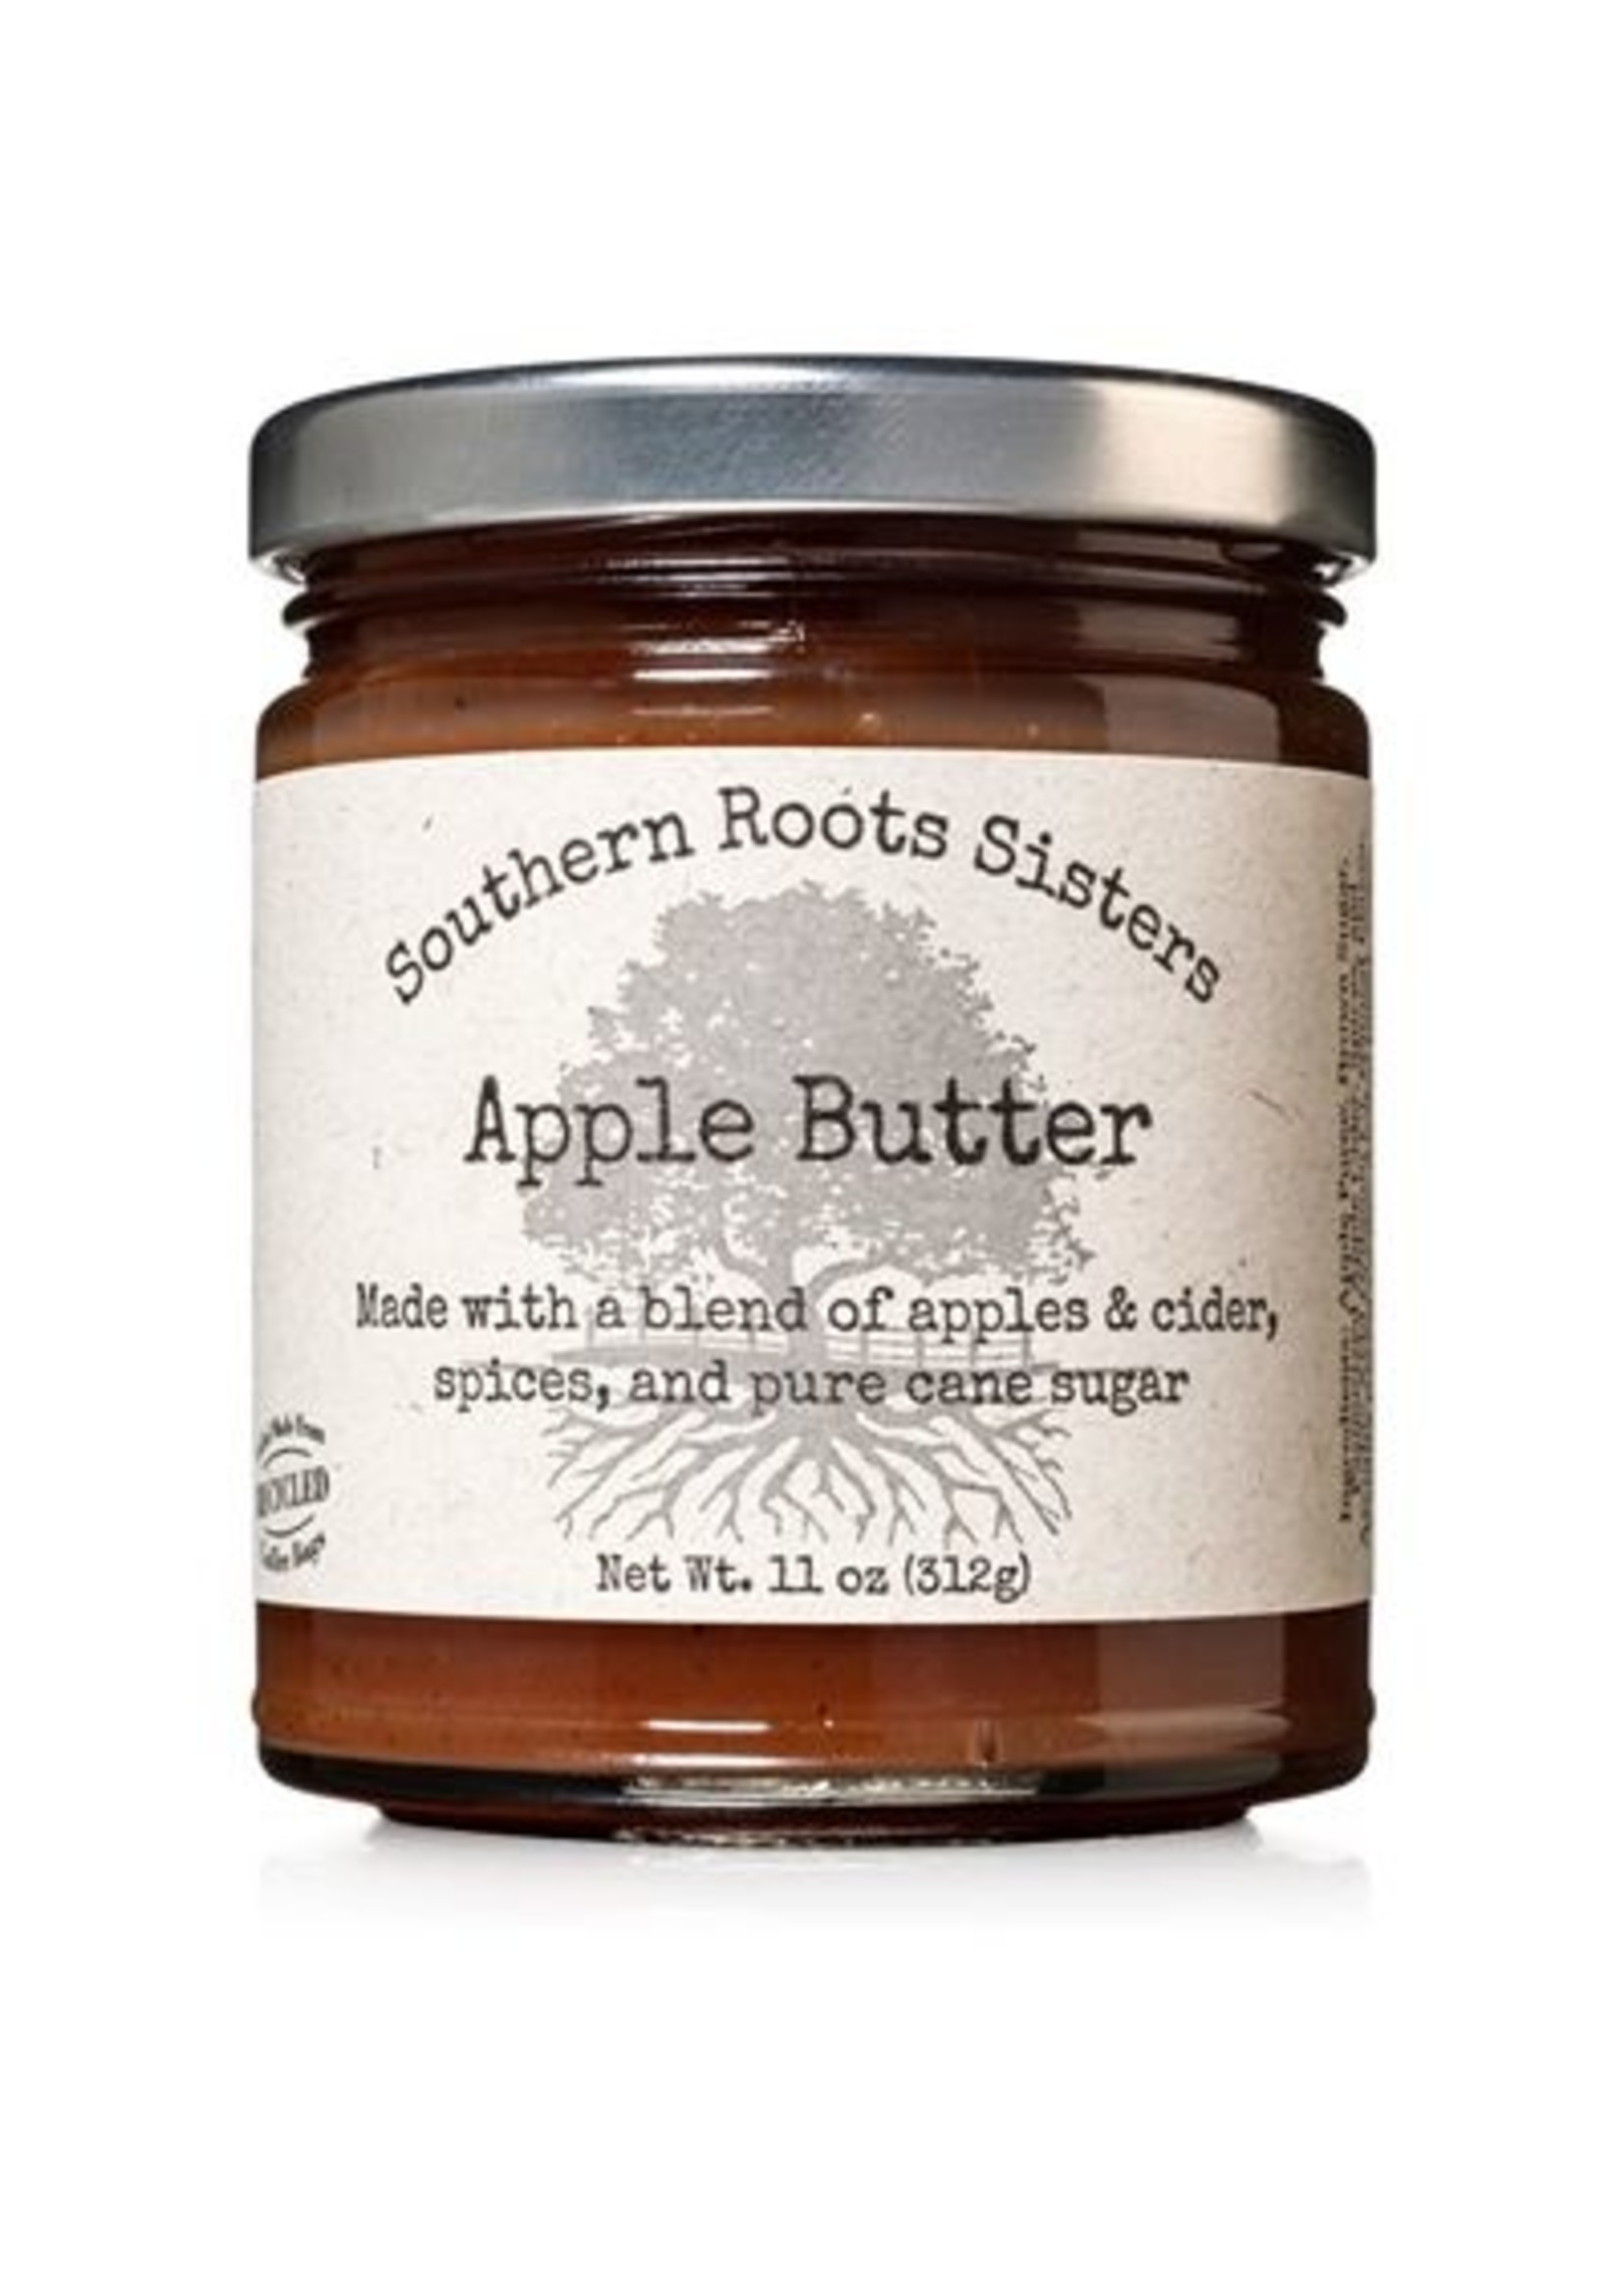 Southern Roots Sisters Apple Butter